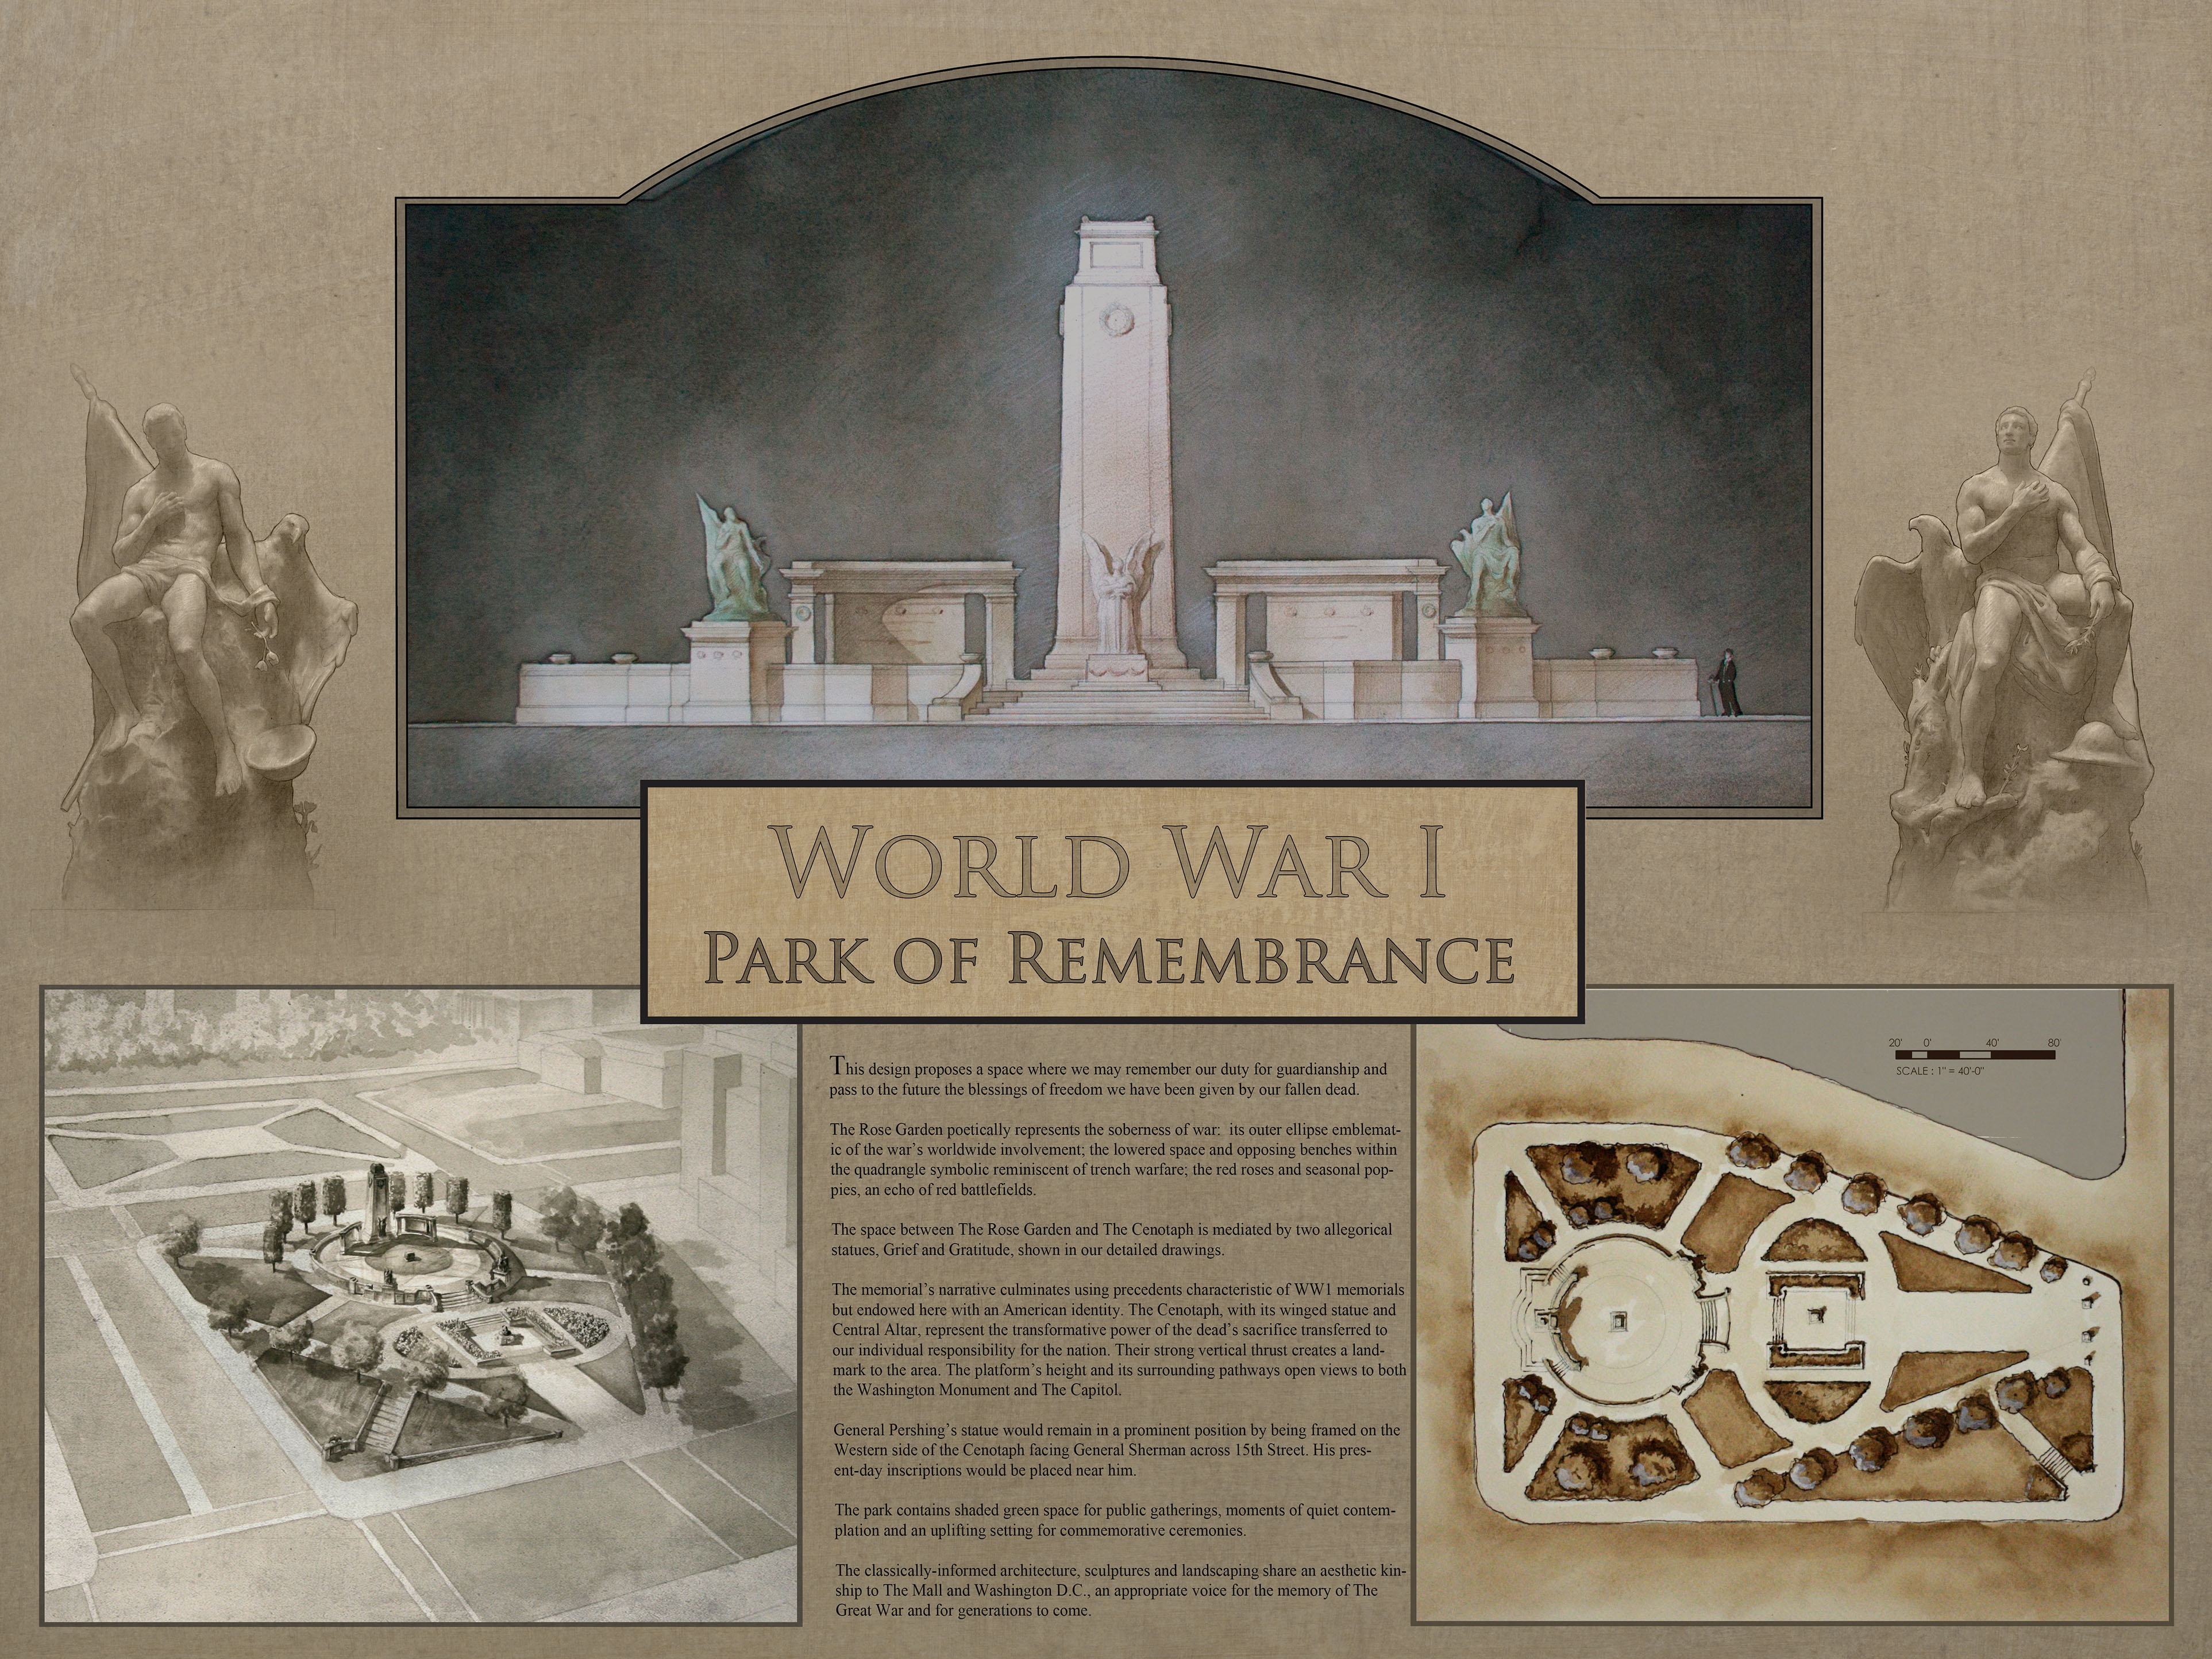 WW1 Memorial References